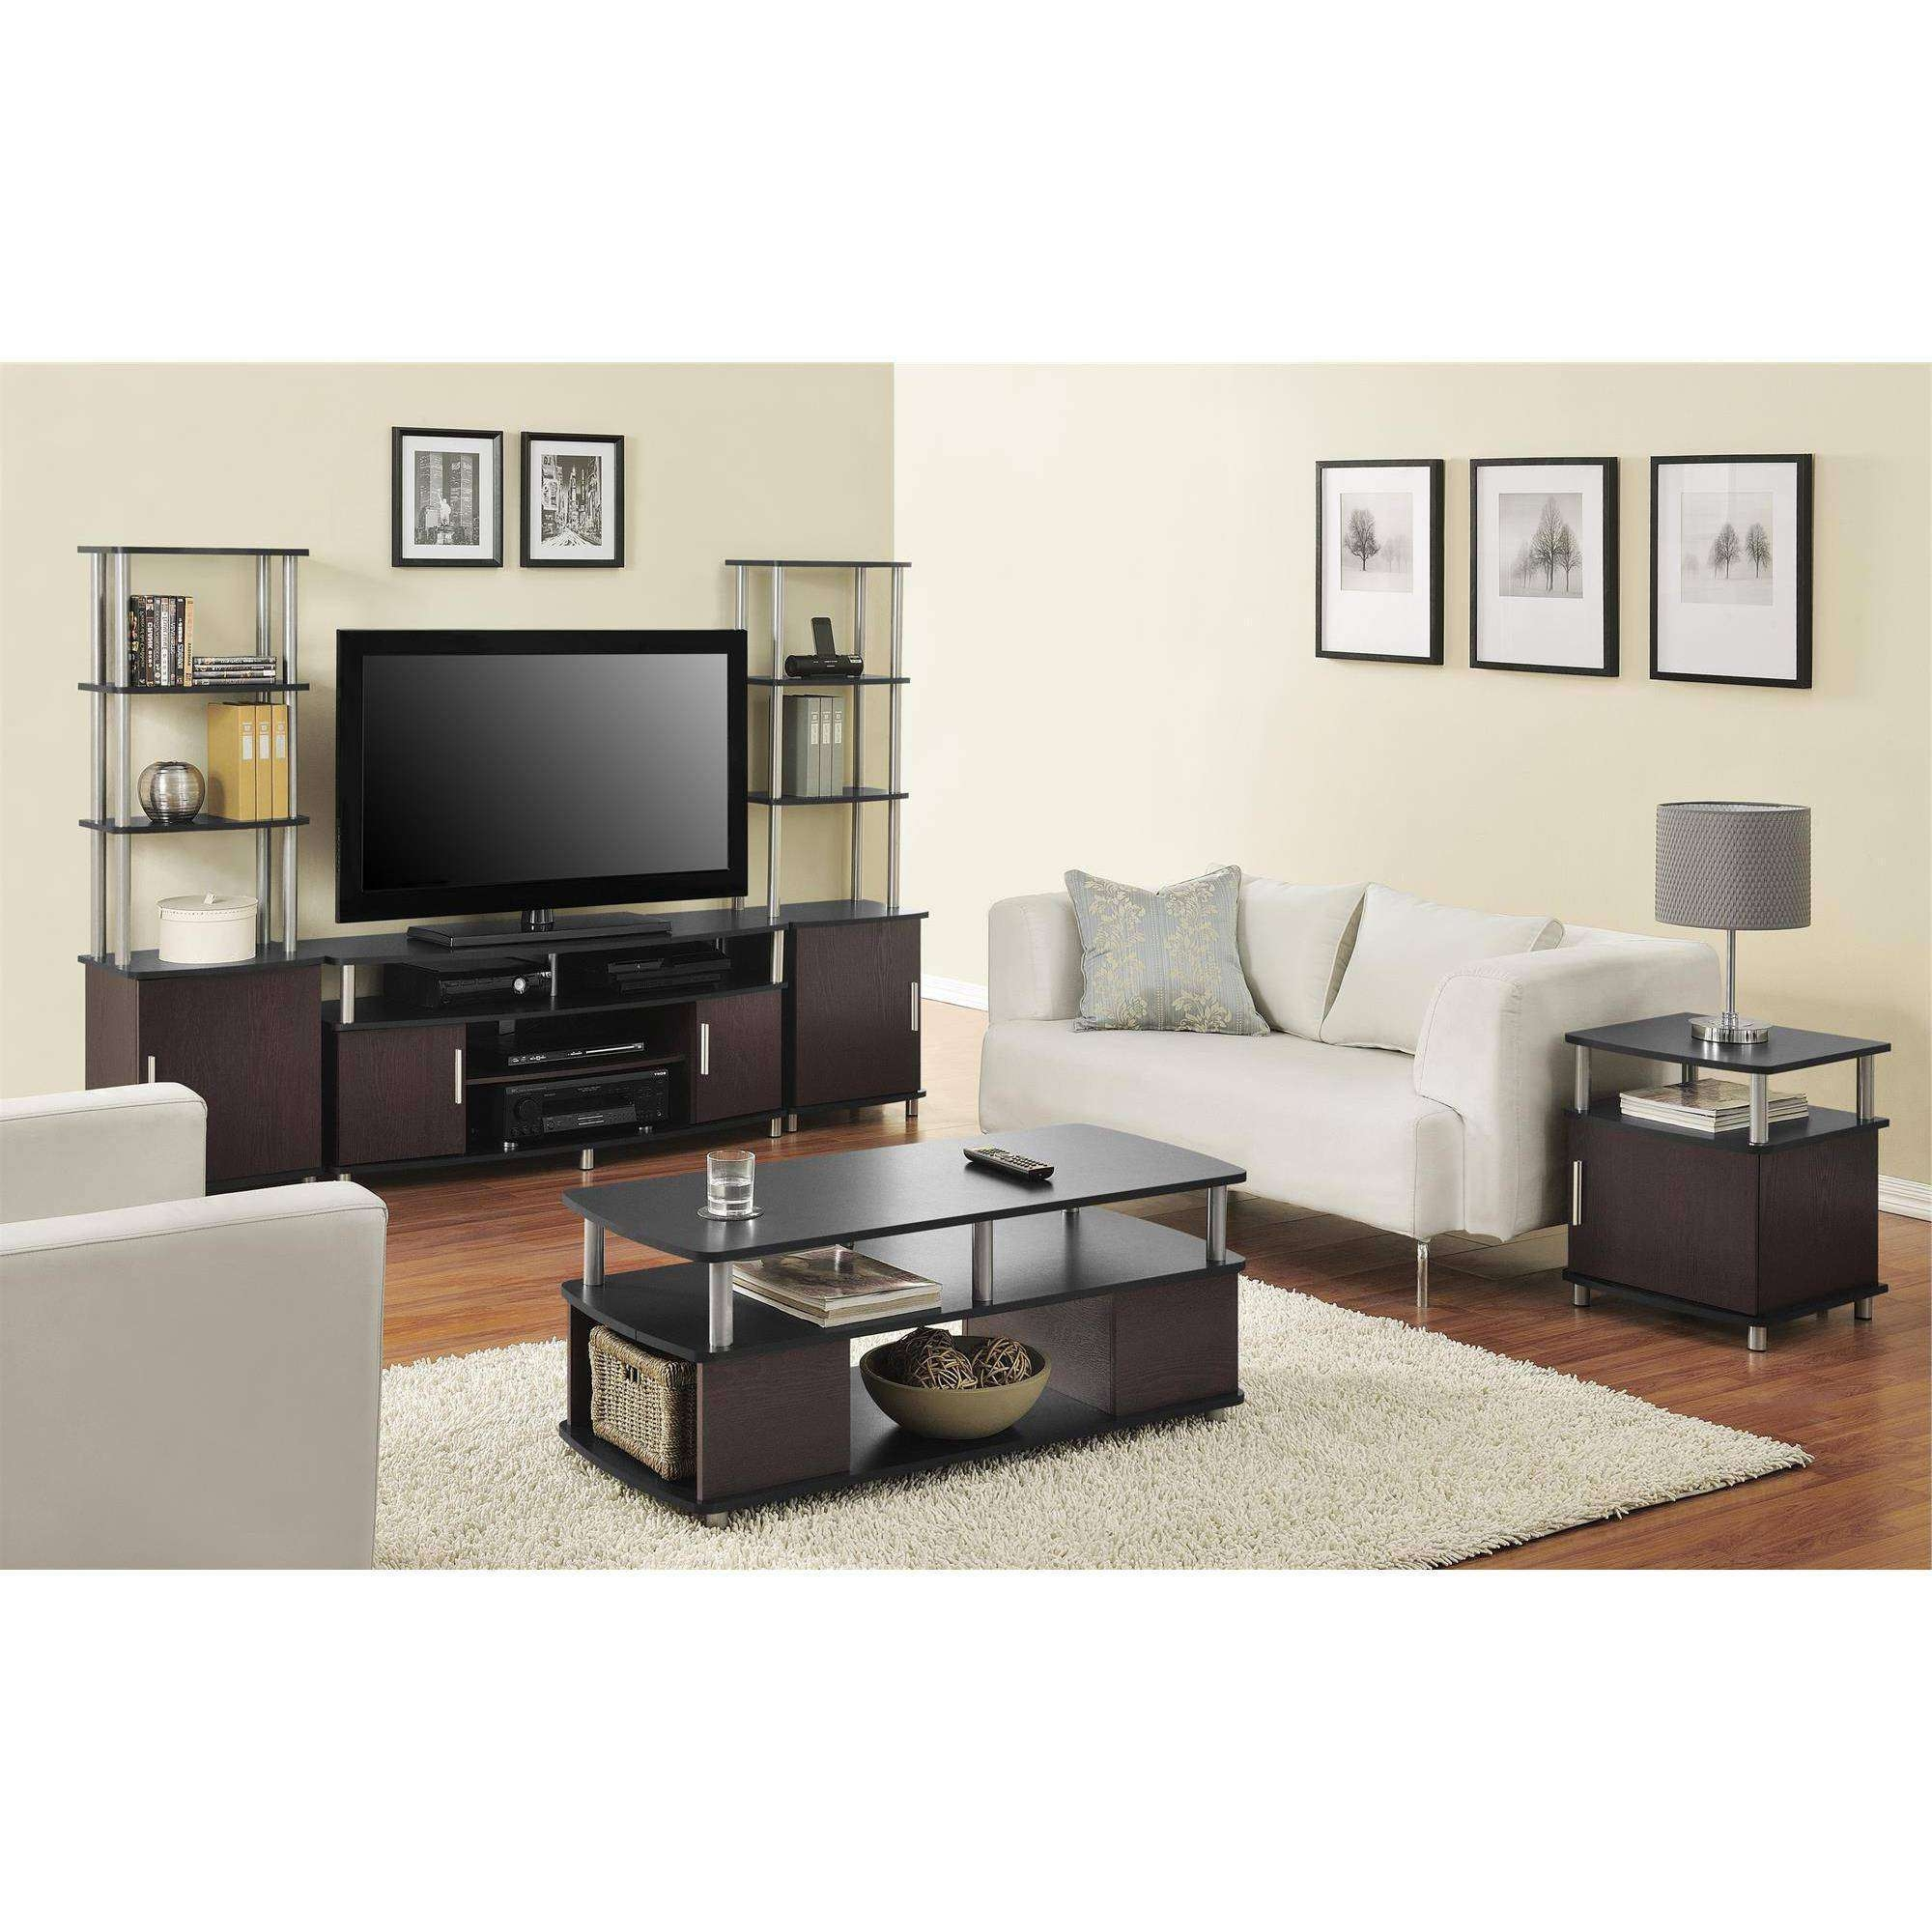 Coffee Table : Best Of Coffee Tables And Tv Stands Matching Diy With Coffee Tables And Tv Stands Matching (View 3 of 20)